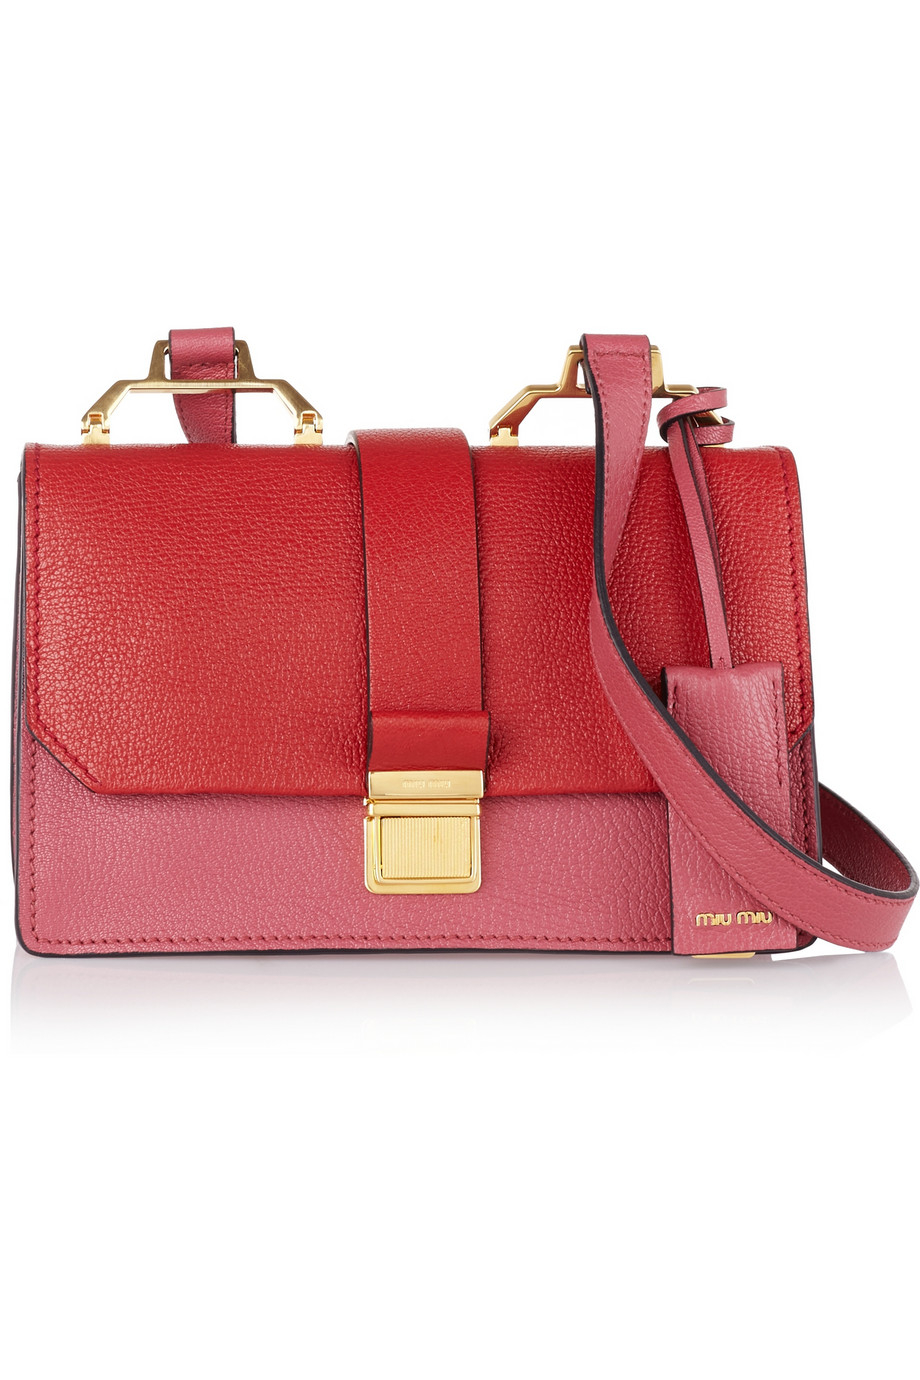 182cb42a5676 Lyst - Miu Miu Madras Textured-Leather Shoulder Bag in Red